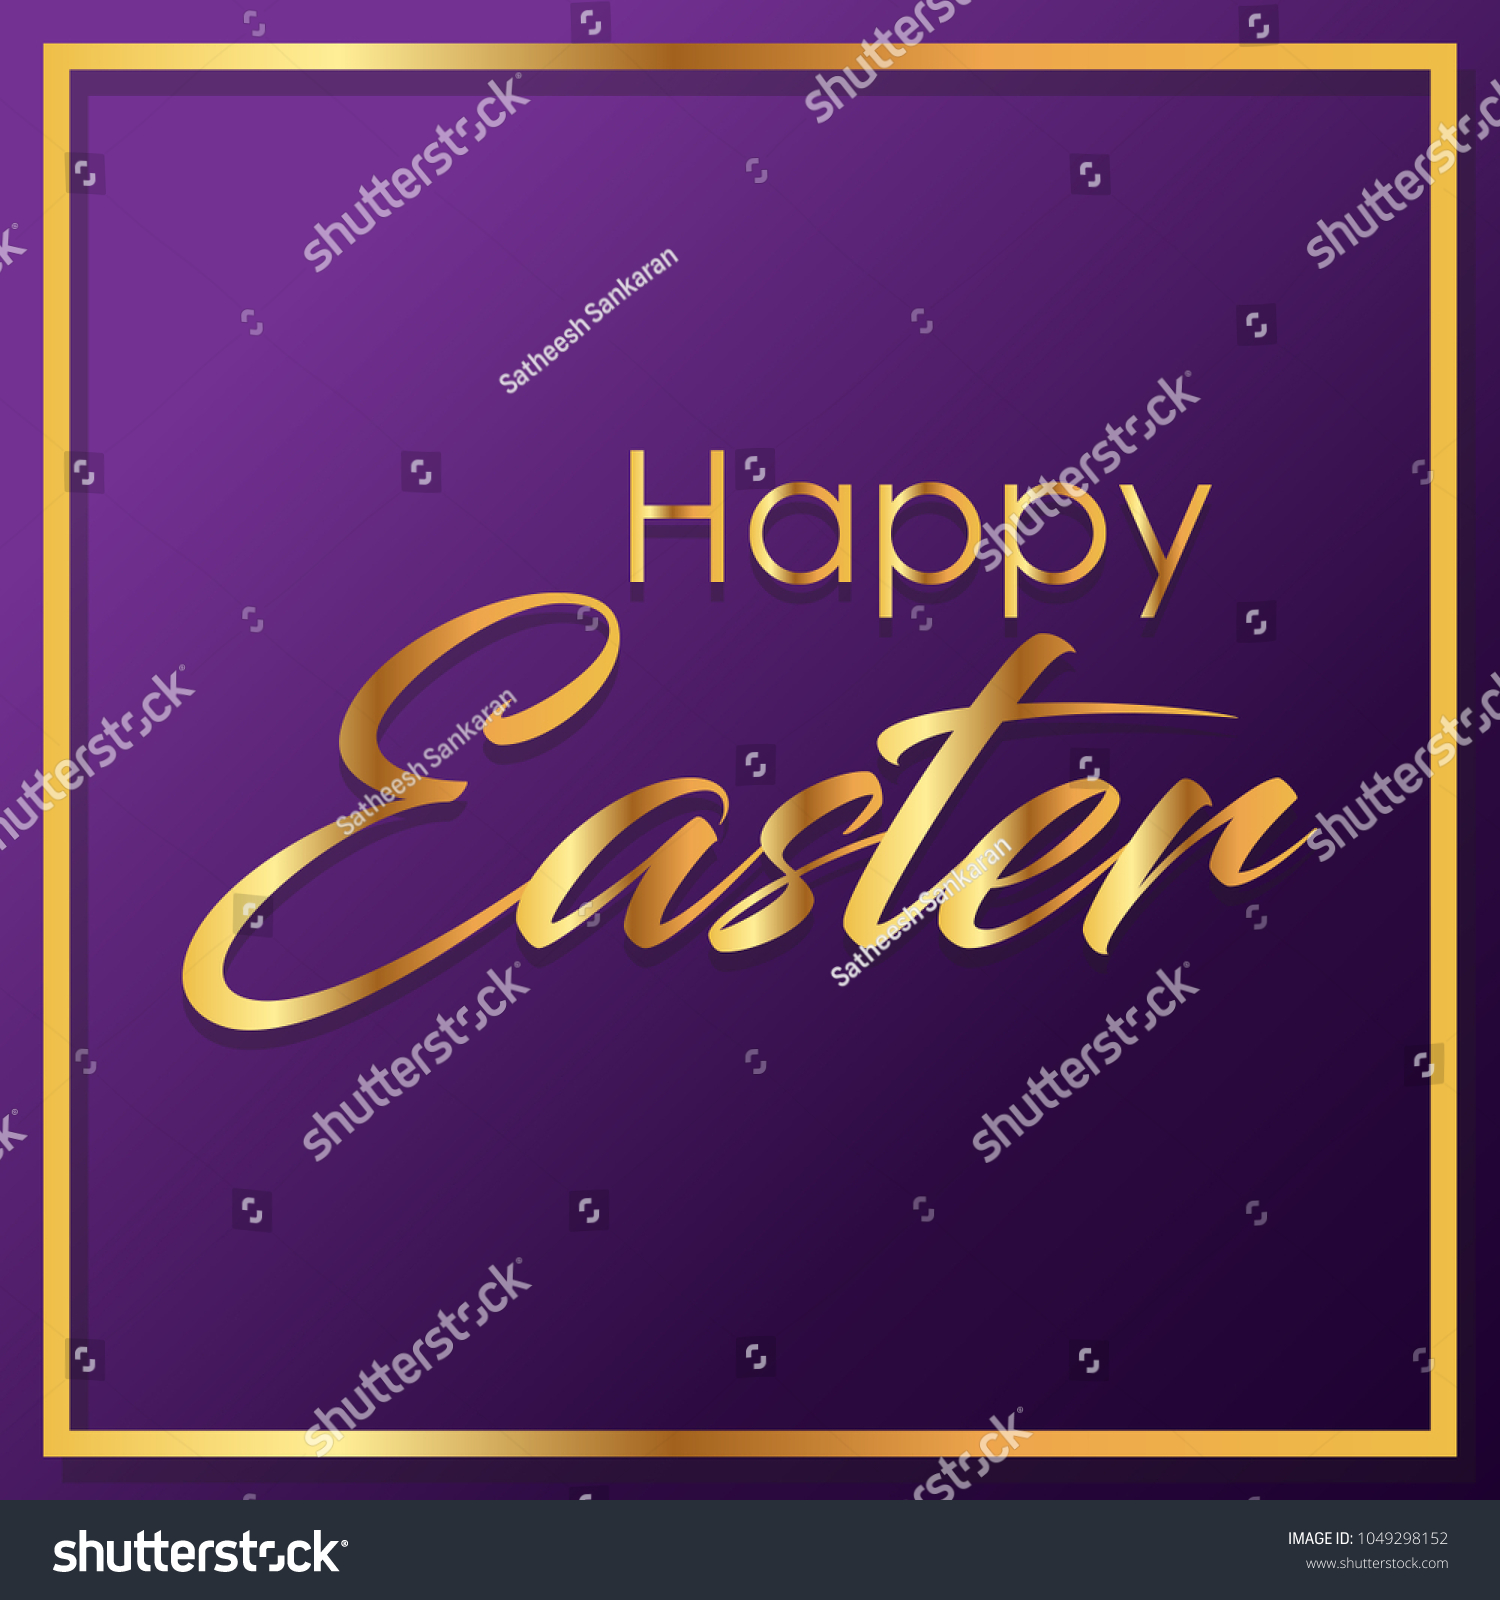 Creative vector illustration easter calligraphic text stock vector creative vector illustration for easter with calligraphic text happy easter can be used for kristyandbryce Choice Image